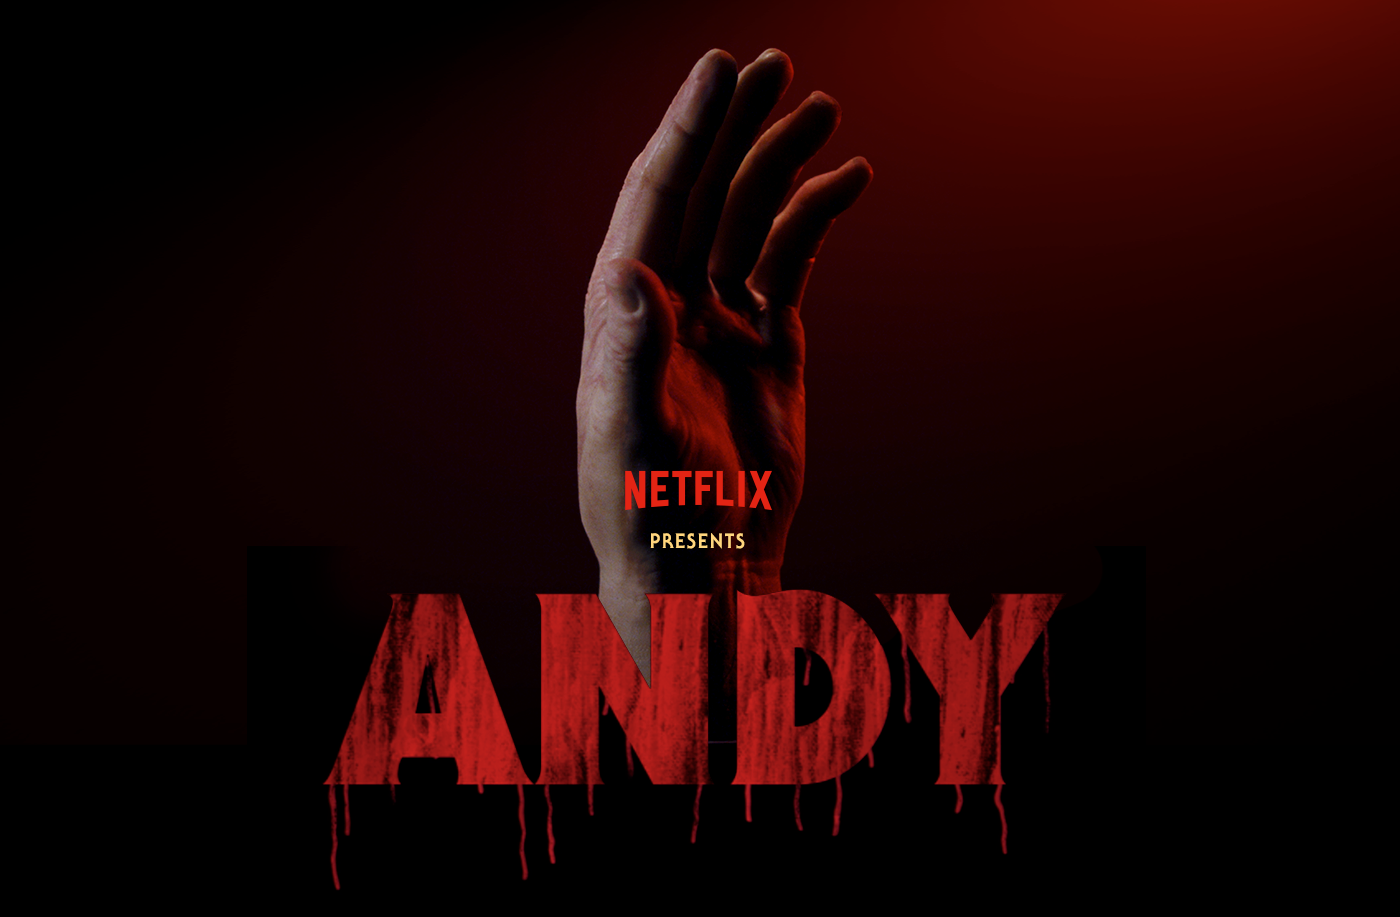 a classic horror story andy fear hand horror movie Netflix